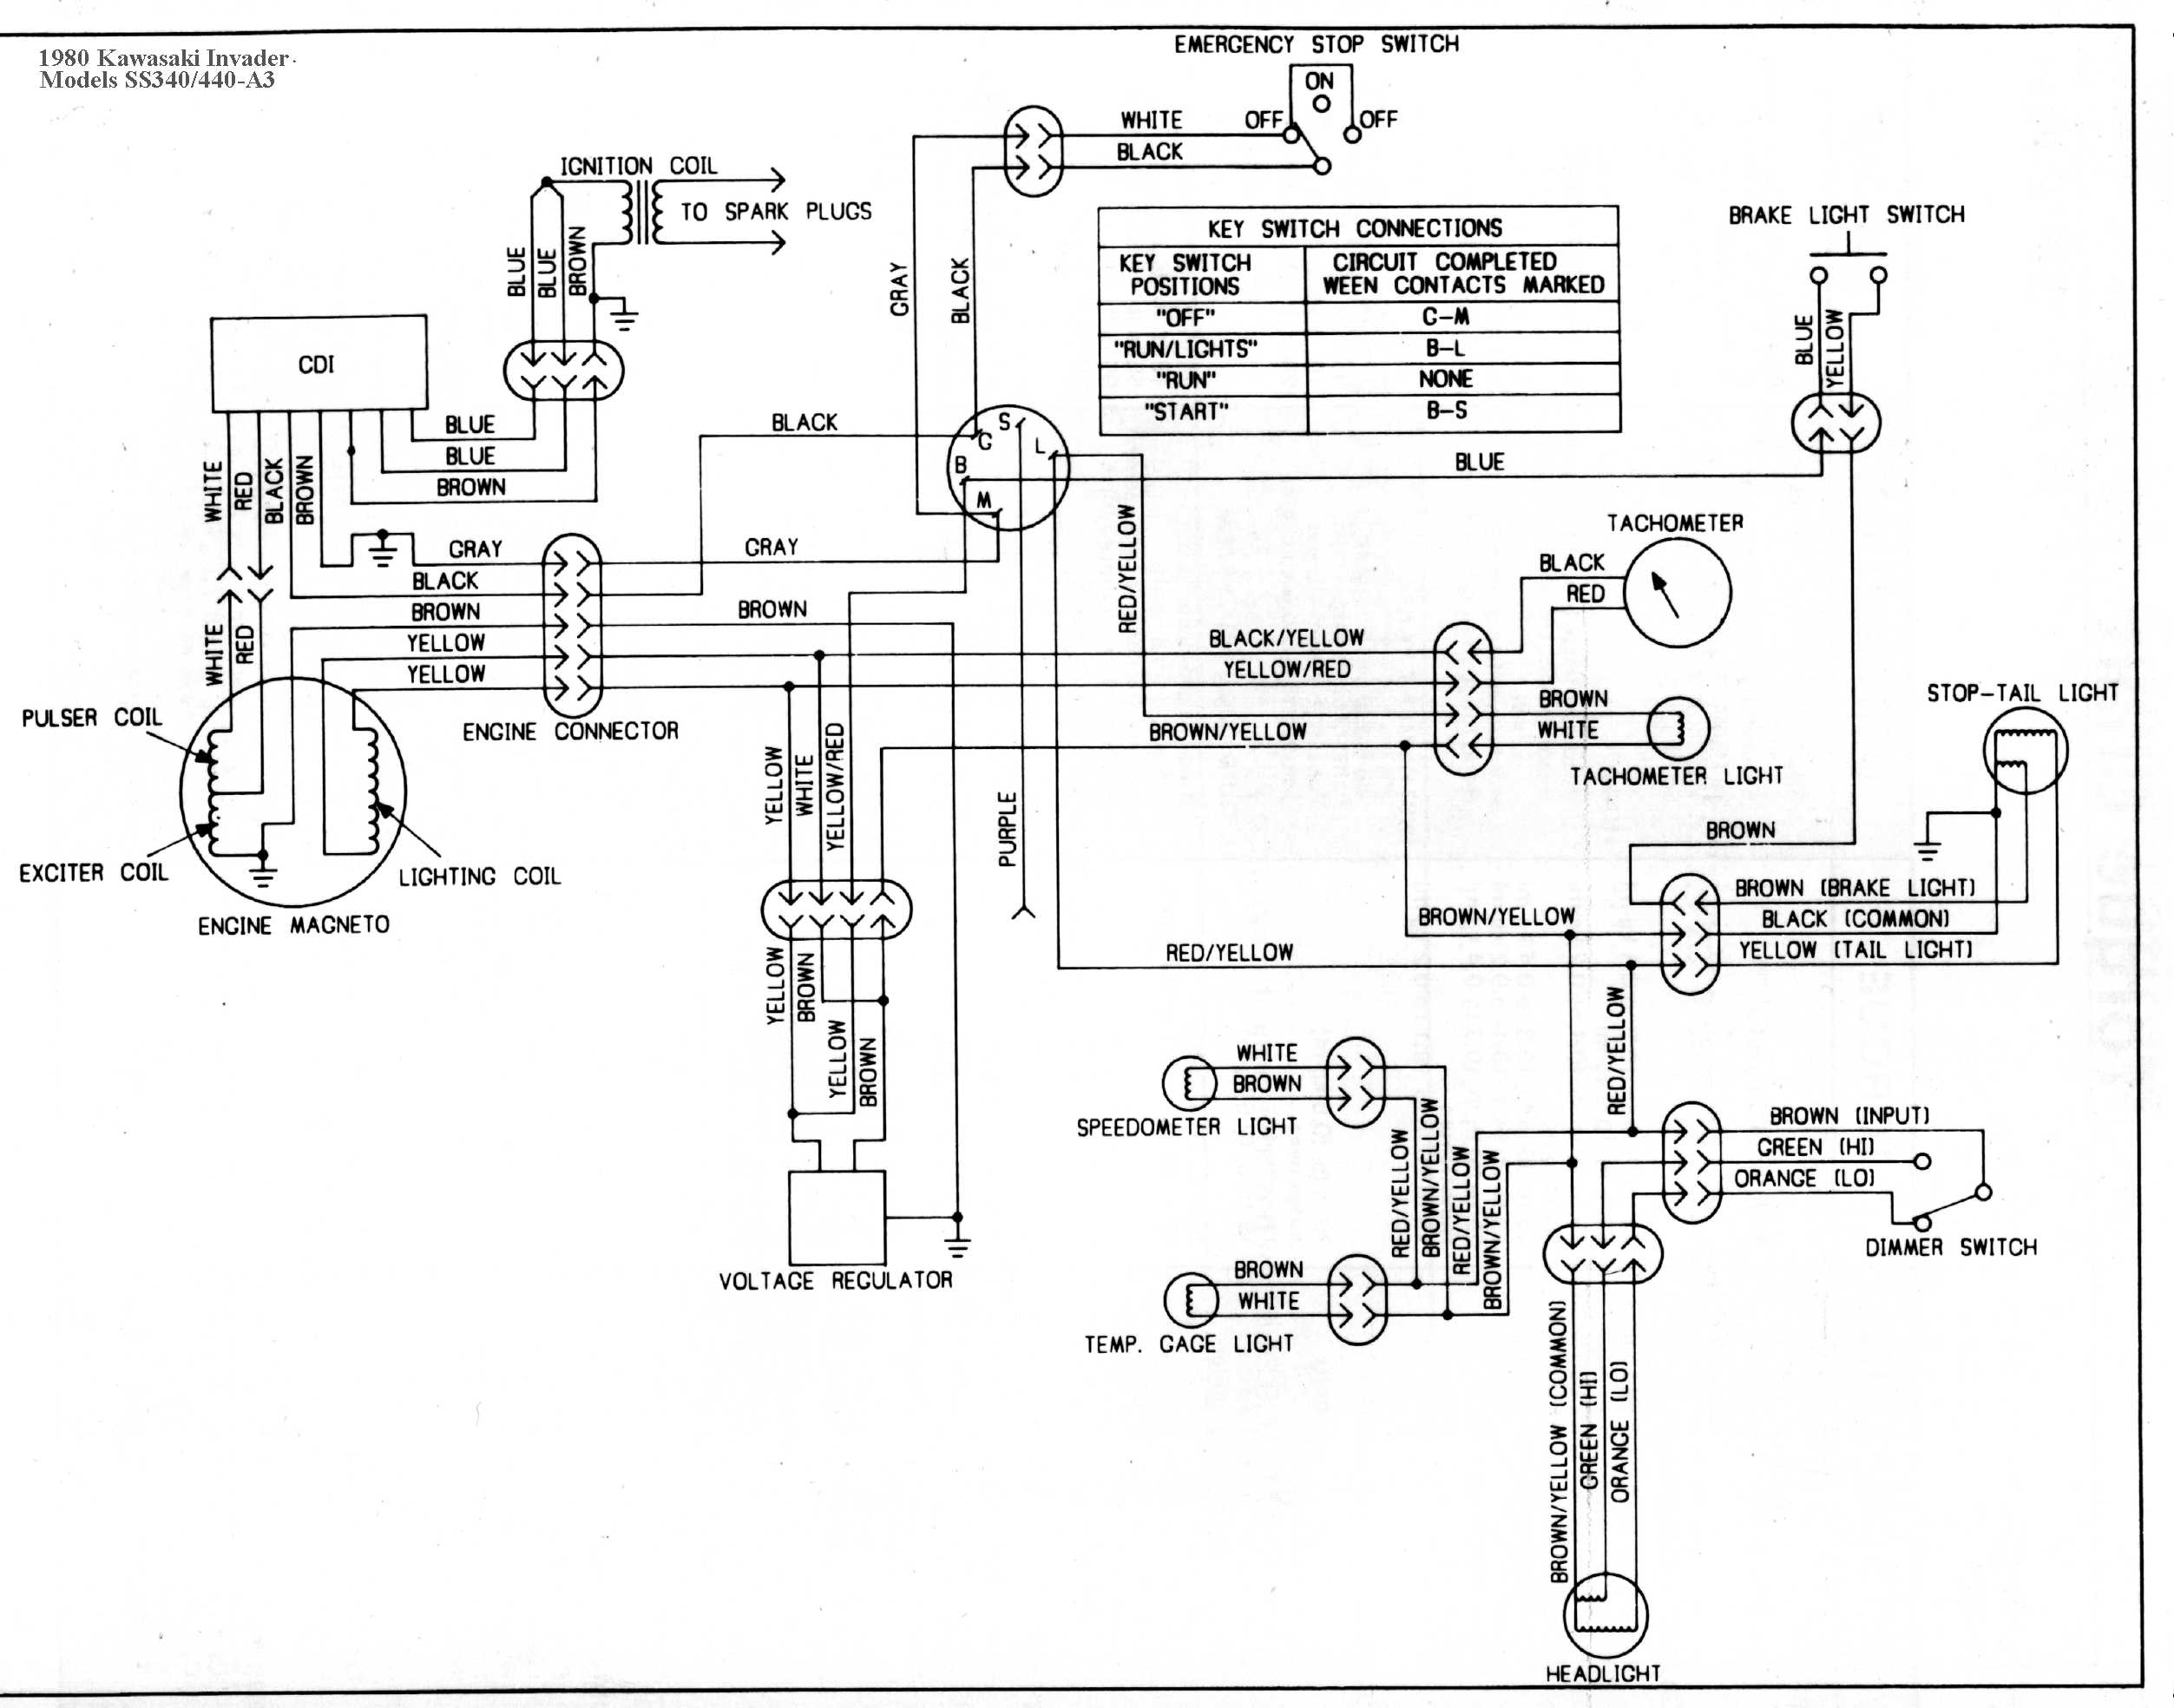 ss340a3 kawasaki invader snowmobile wiring diagrams 1979 ford escort wiring diagram at n-0.co